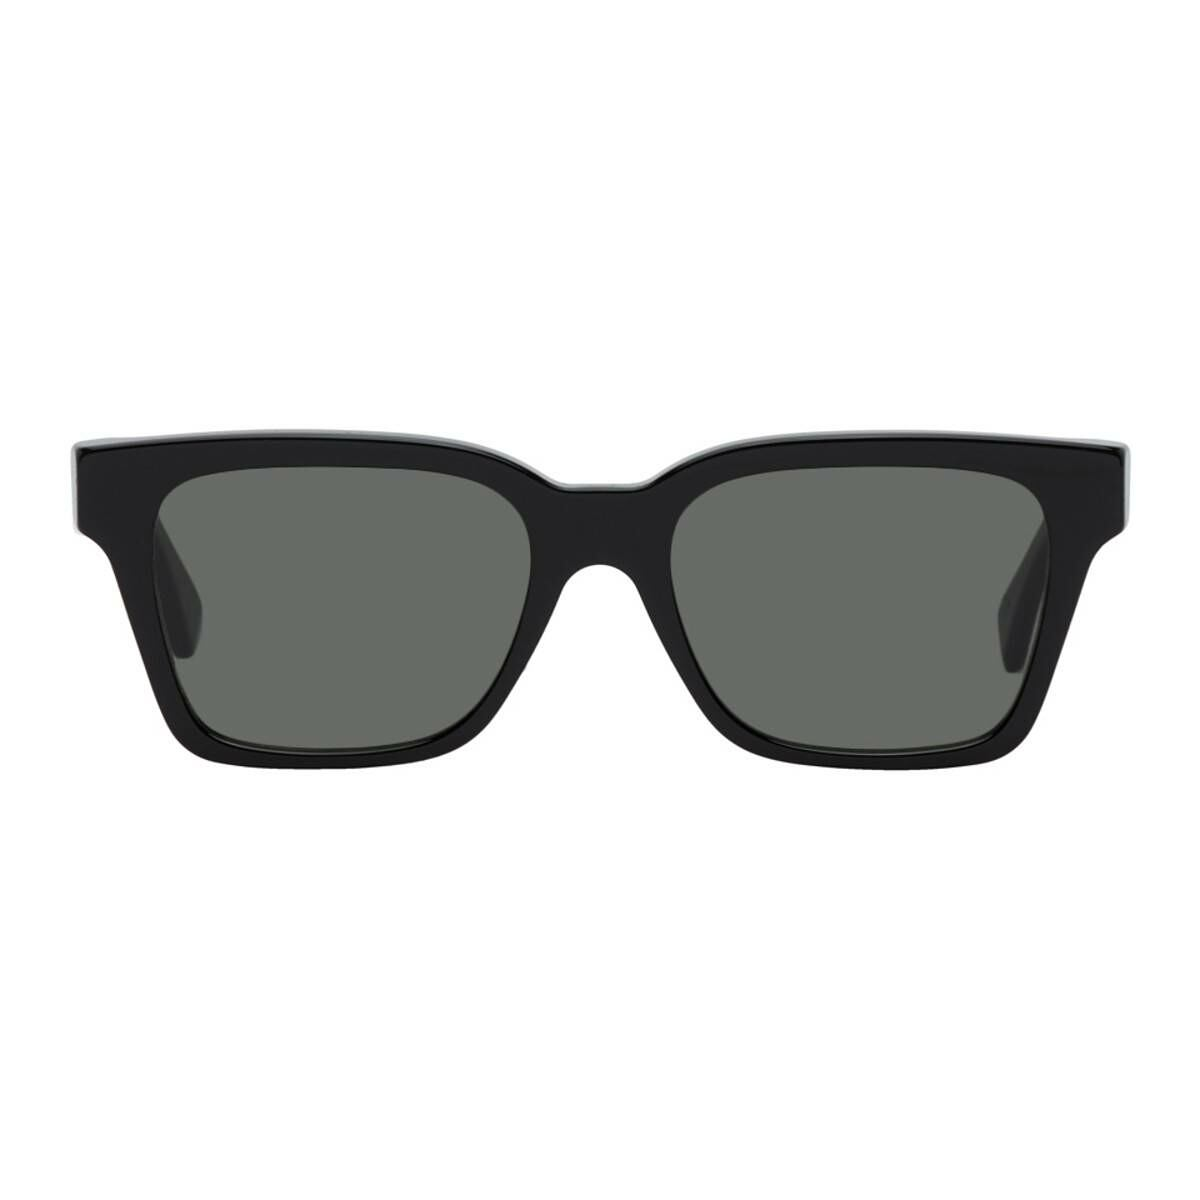 RETROSUPERFUTURE Black America Square Sunglasses Ssense USA MEN Men ACCESSORIES Mens SUNGLASSES